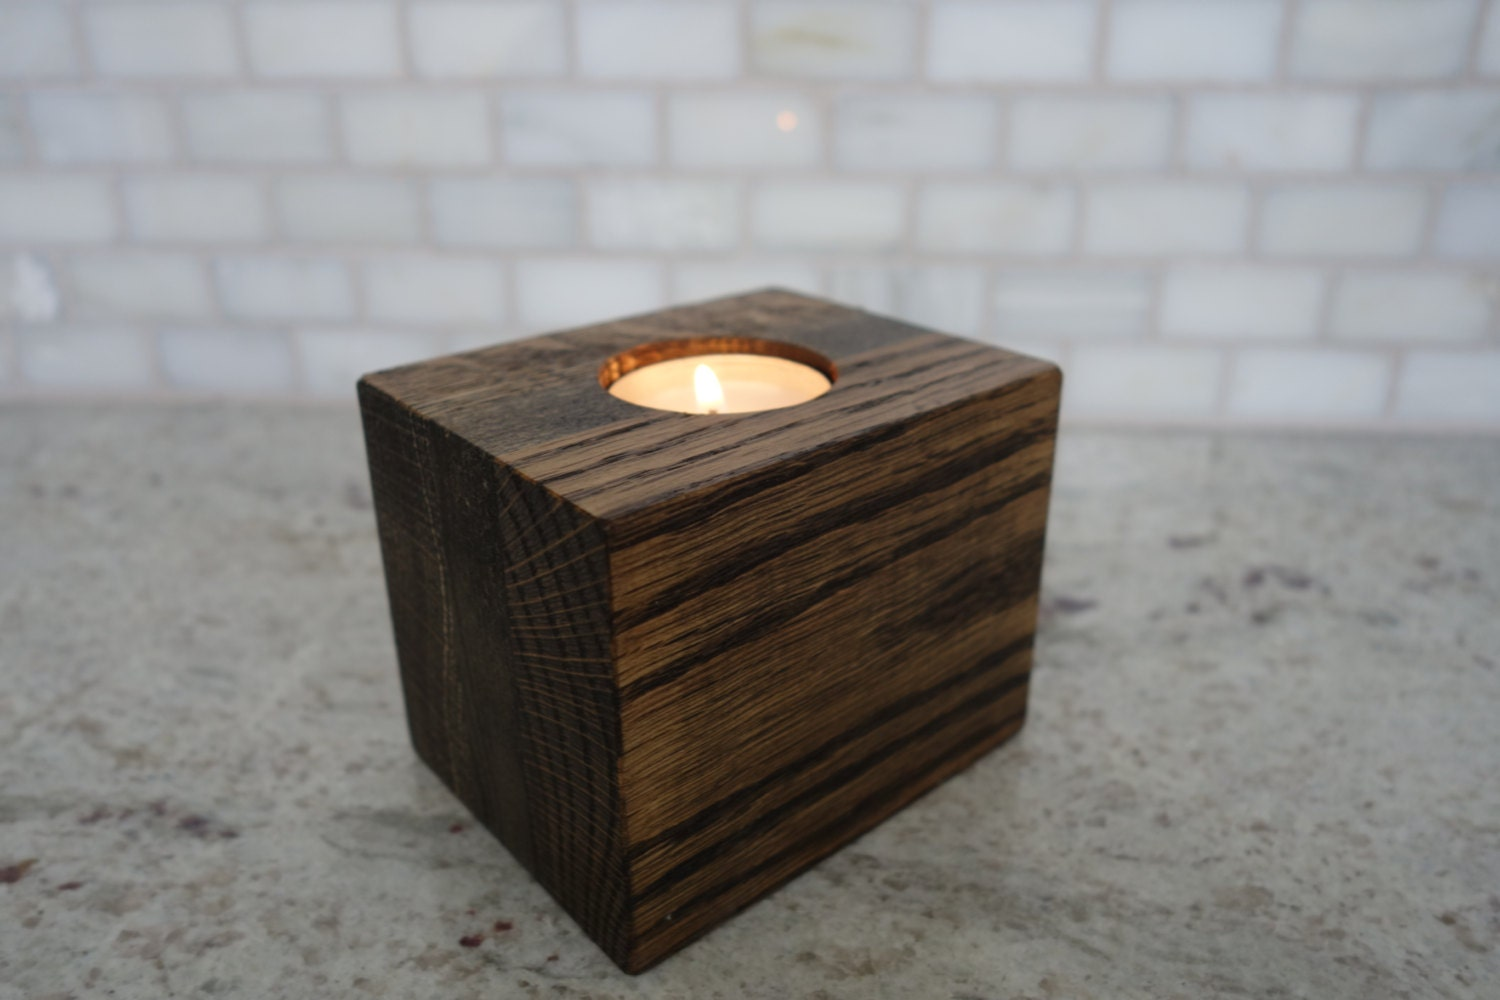 Handmade Wood Tea Light Candle Holder Votive Holder Tealight